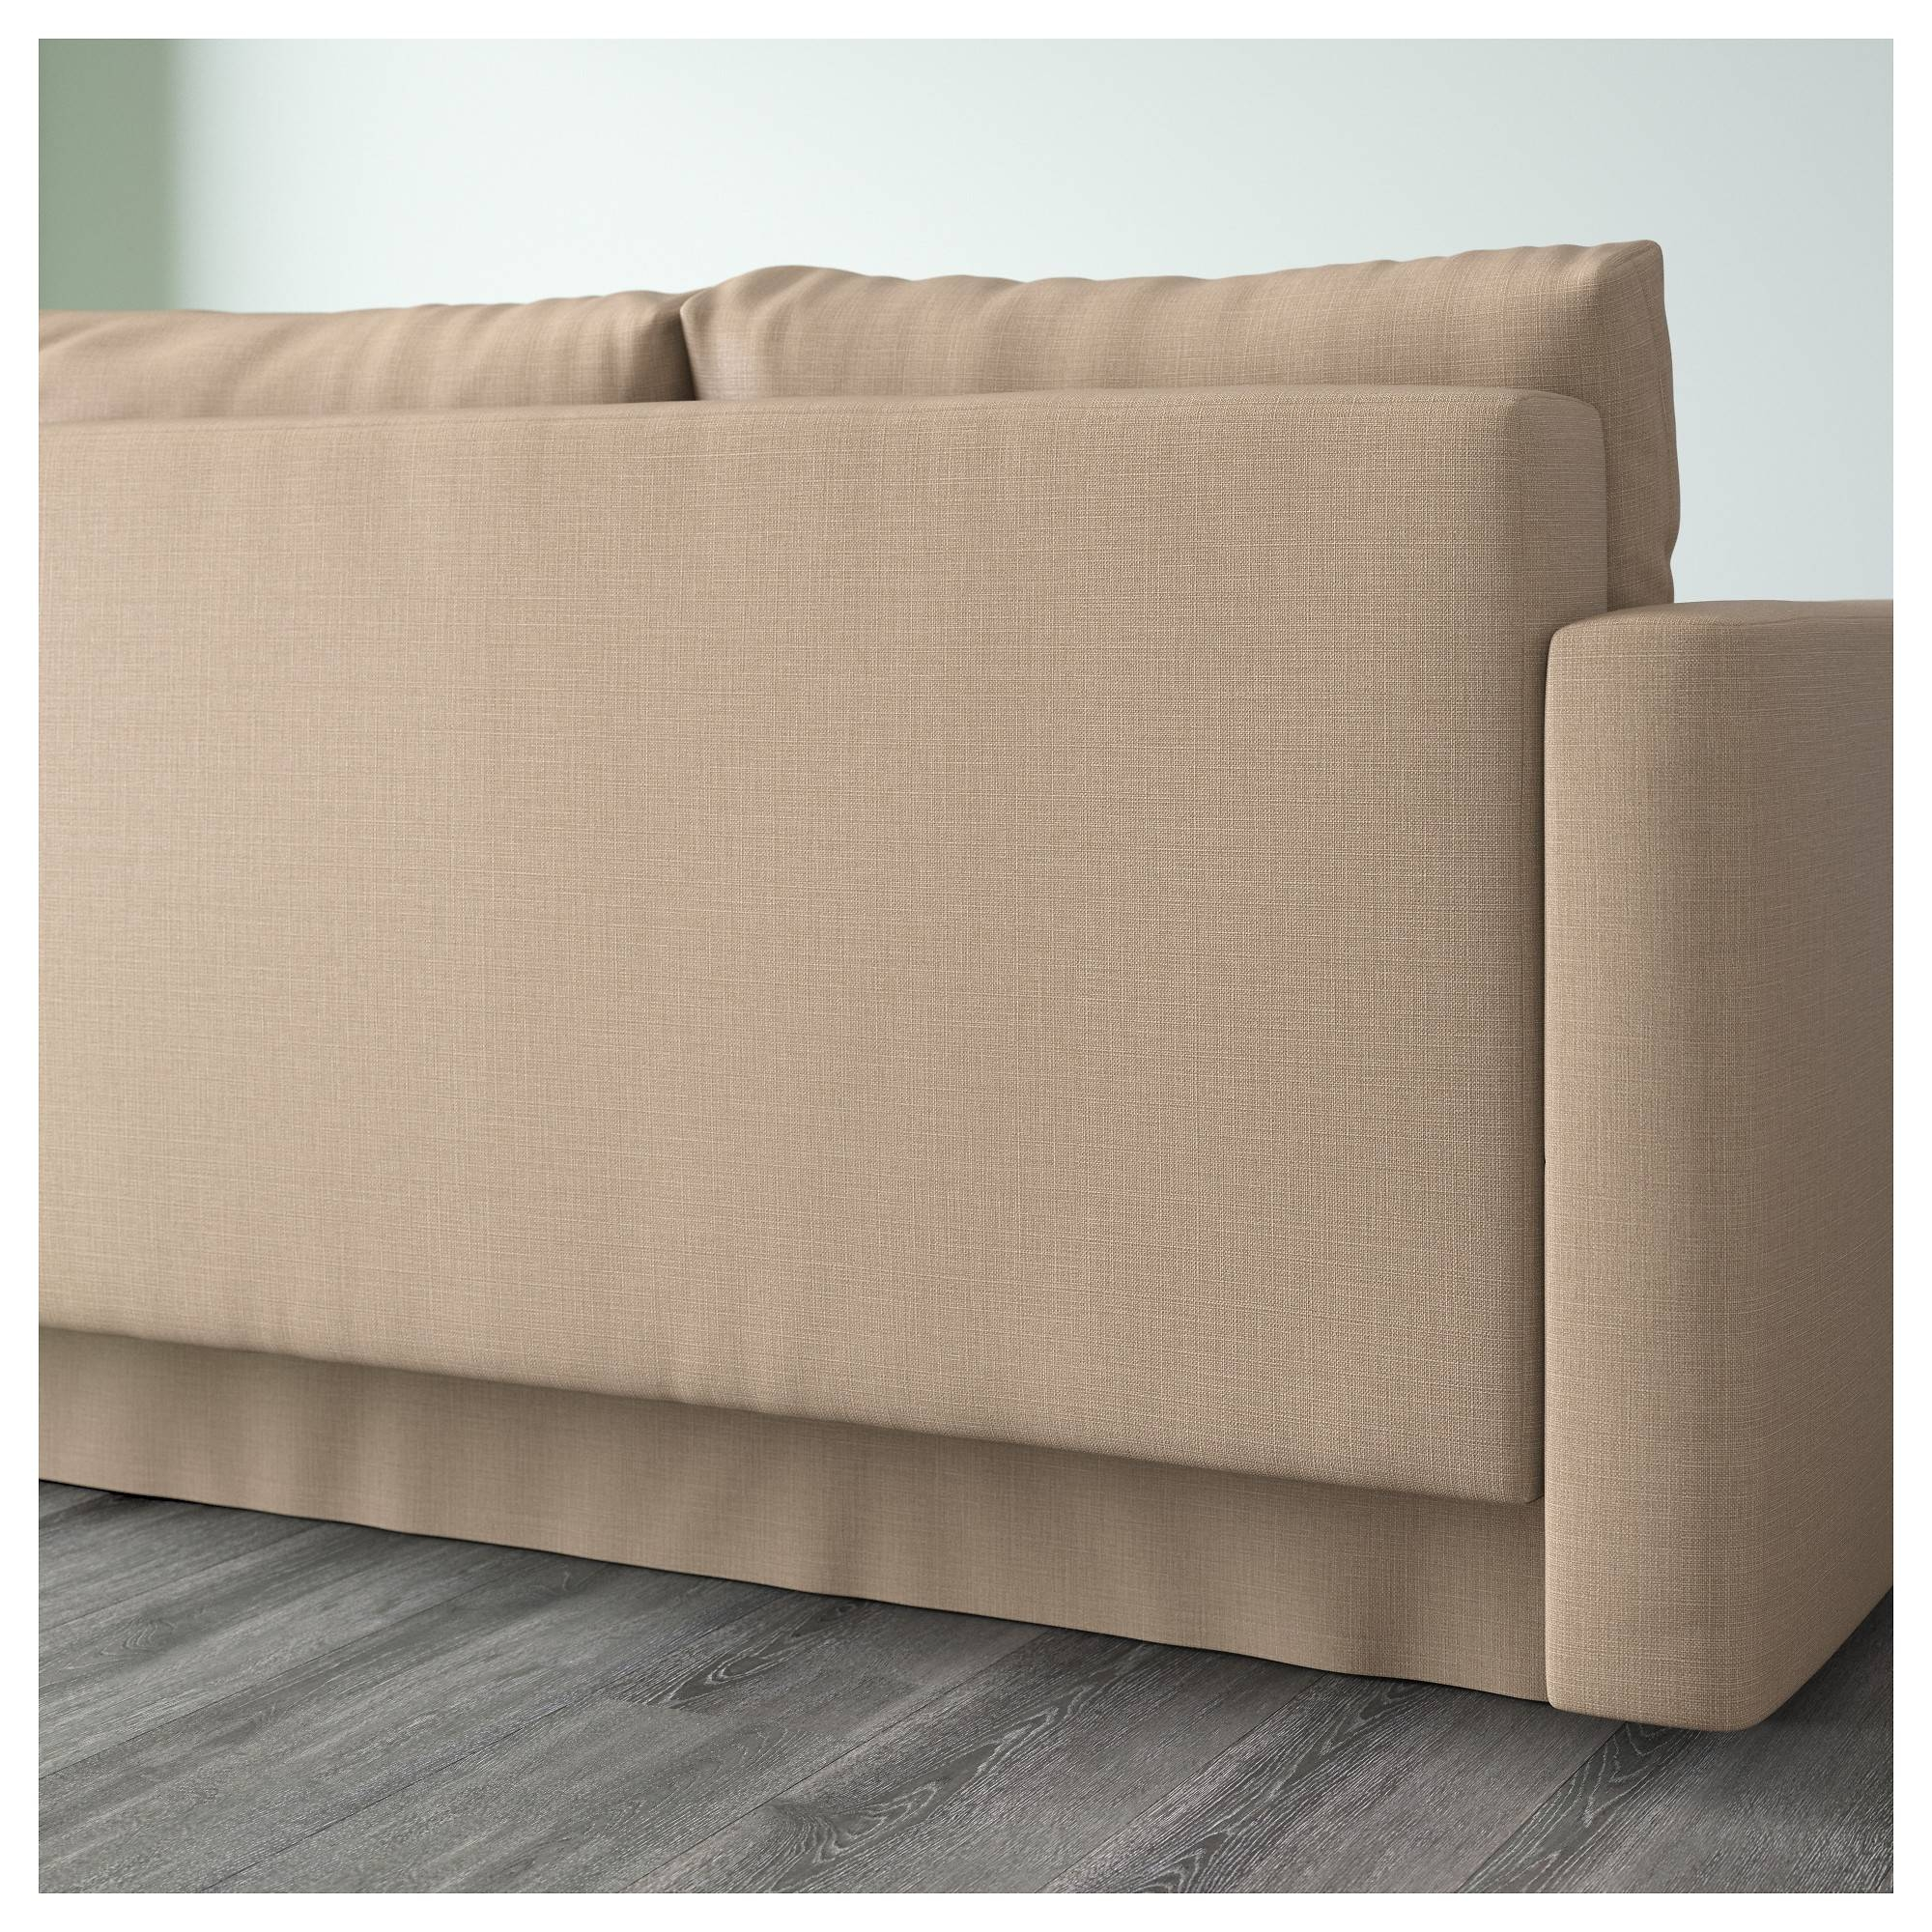 Friheten Corner Sofa-Bed With Storage Skiftebo Beige - Ikea within Ikea Corner Sofa Bed With Storage (Image 7 of 25)